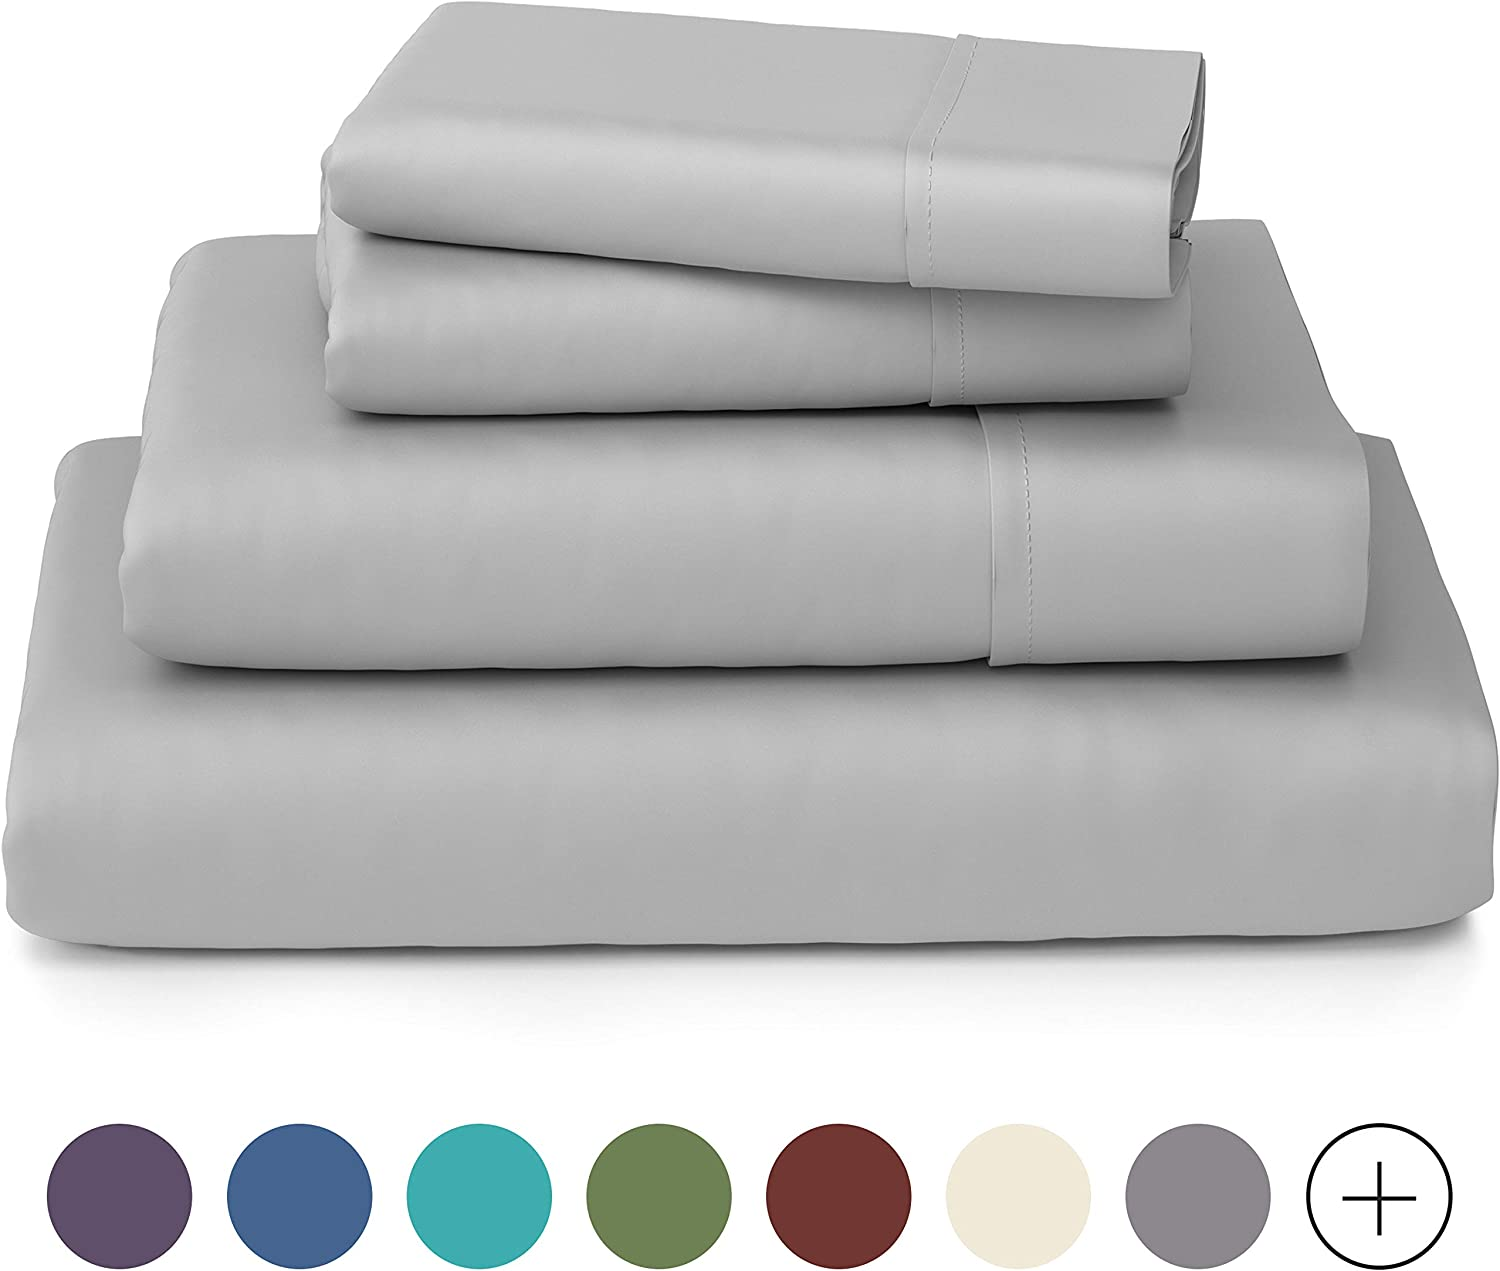 Cosy House Collection Luxury Bamboo Sheets - Hypoallergenic Bedding Blend from Natural Bamboo Fiber - Resists Wrinkles - 4 Piece Bed Sheet Set - 1 Fitted Sheet, 1 Flat, 2 Pillowcases - Queen, White: Home & Kitchen